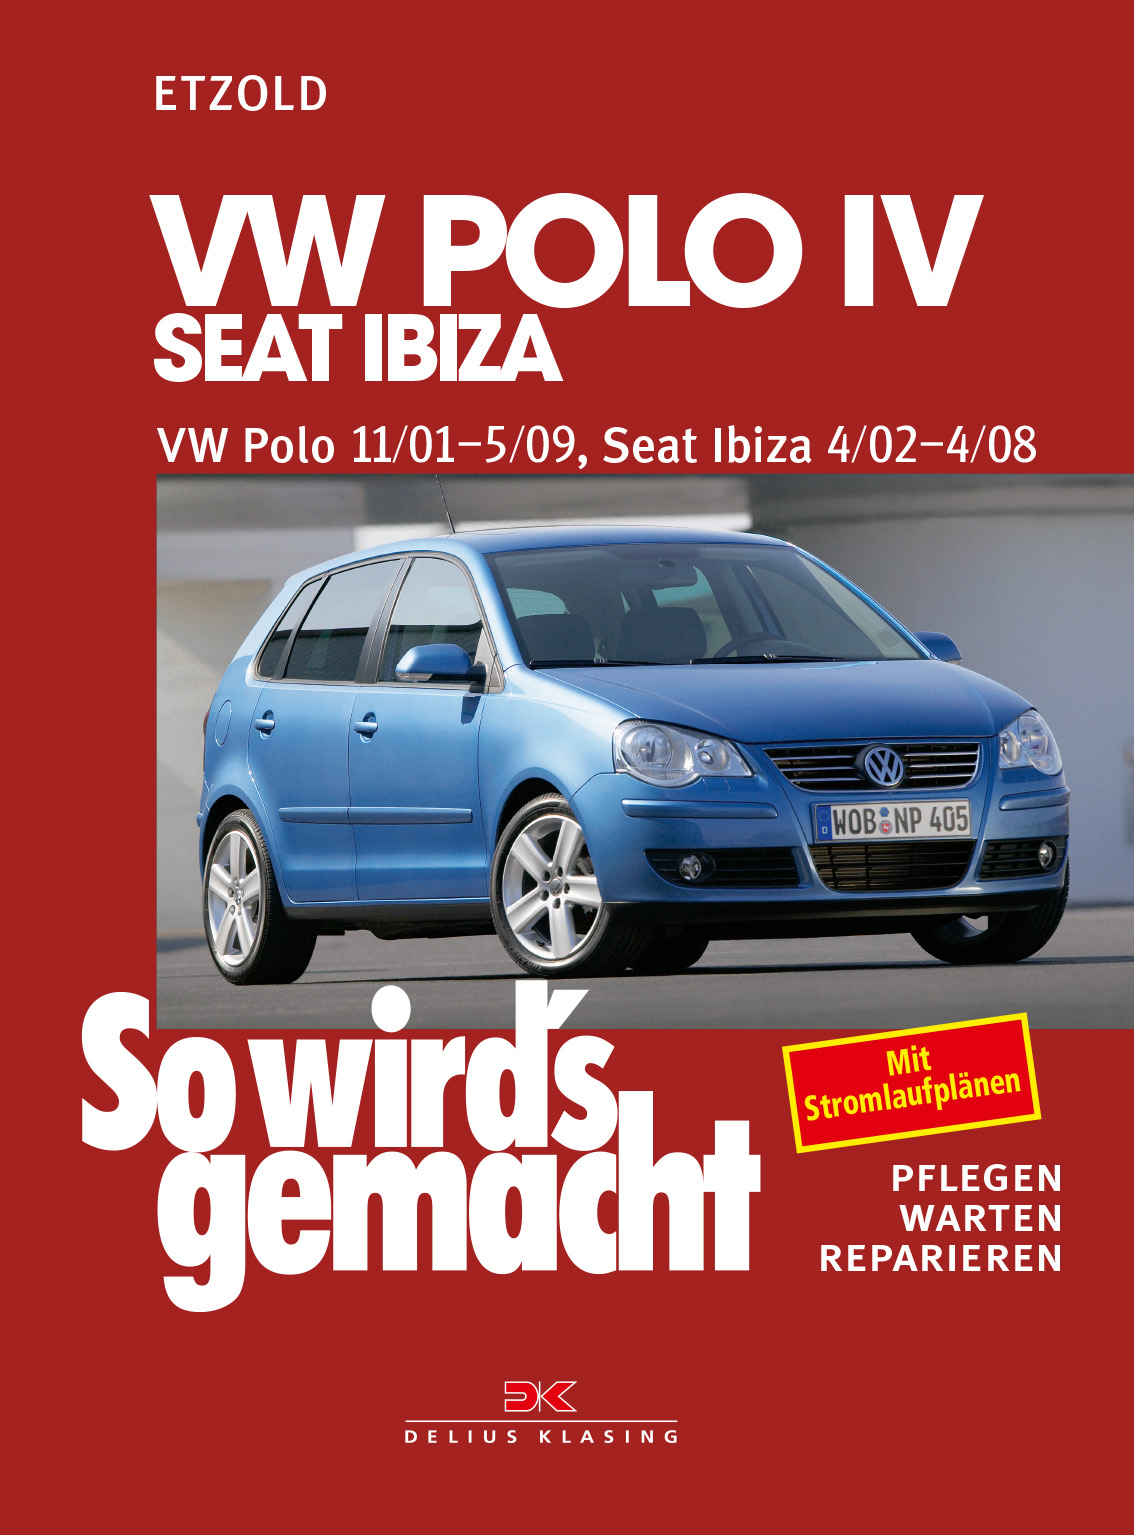 vw polo iv 11 01 5 09 seat ibiza 4 02 4 08 delius klasing. Black Bedroom Furniture Sets. Home Design Ideas